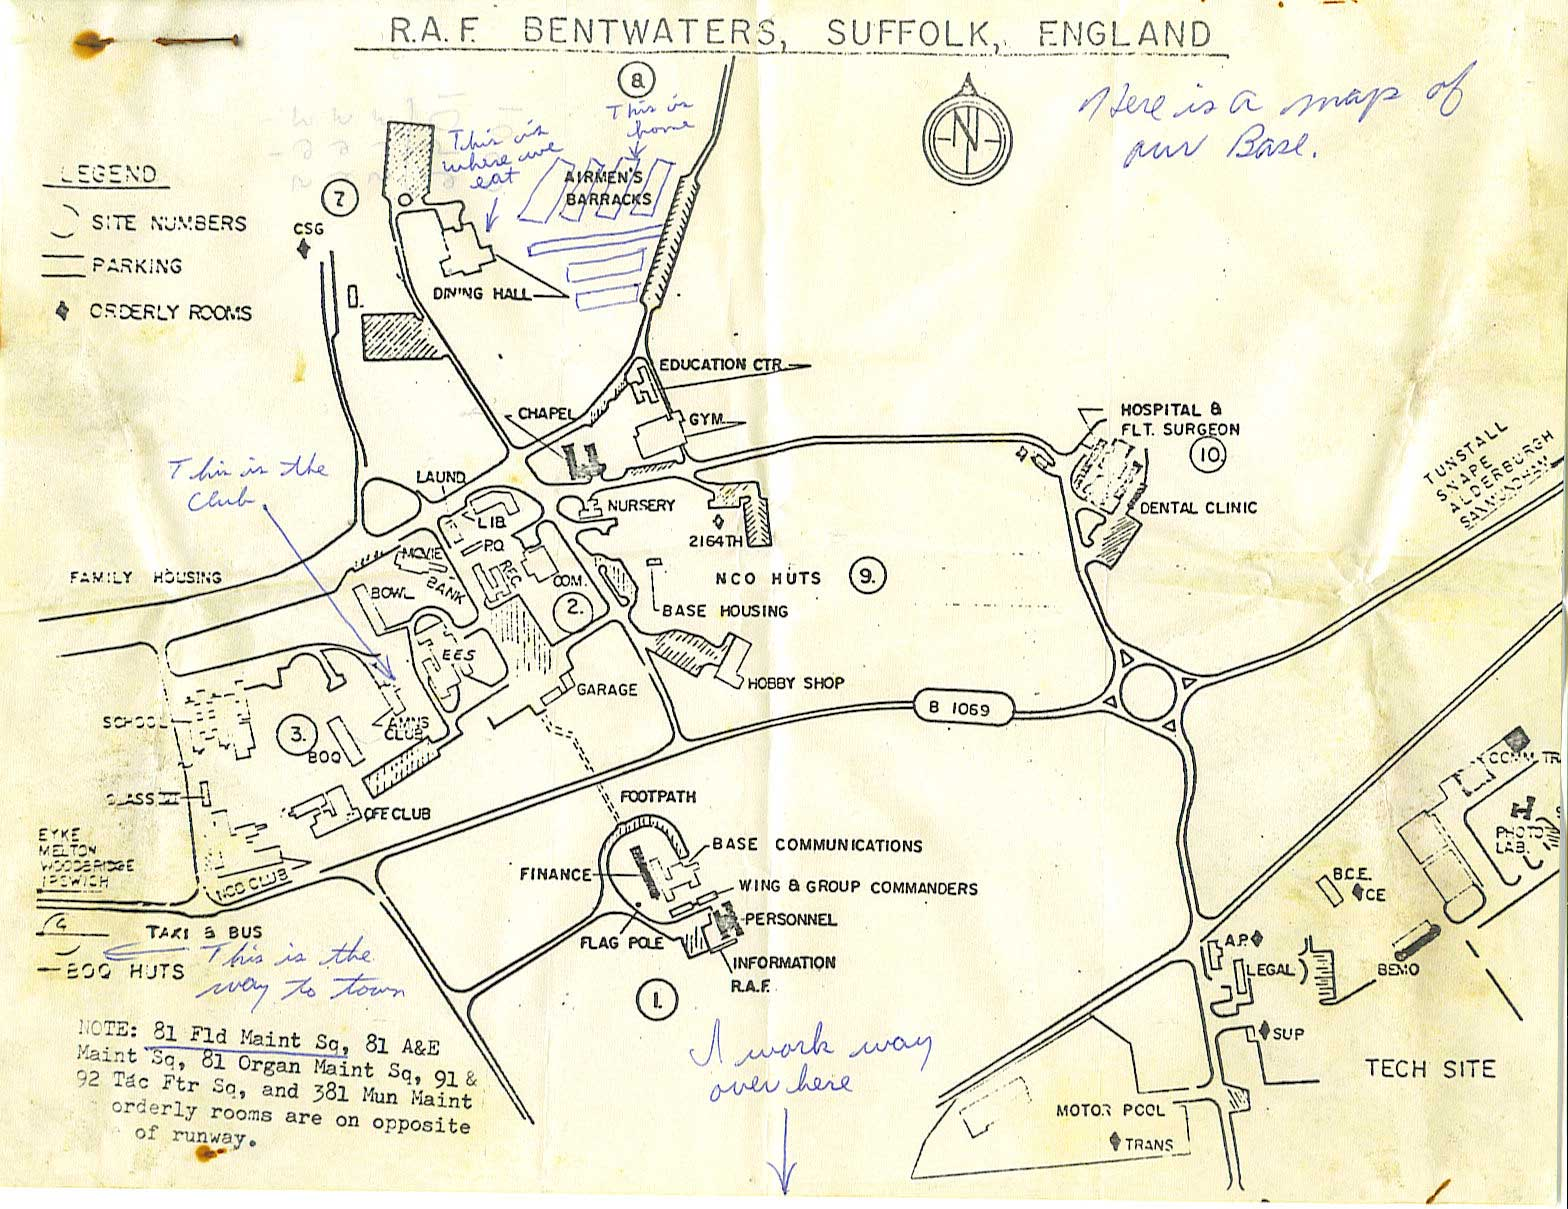 Bentwaters map - mainly domestic site